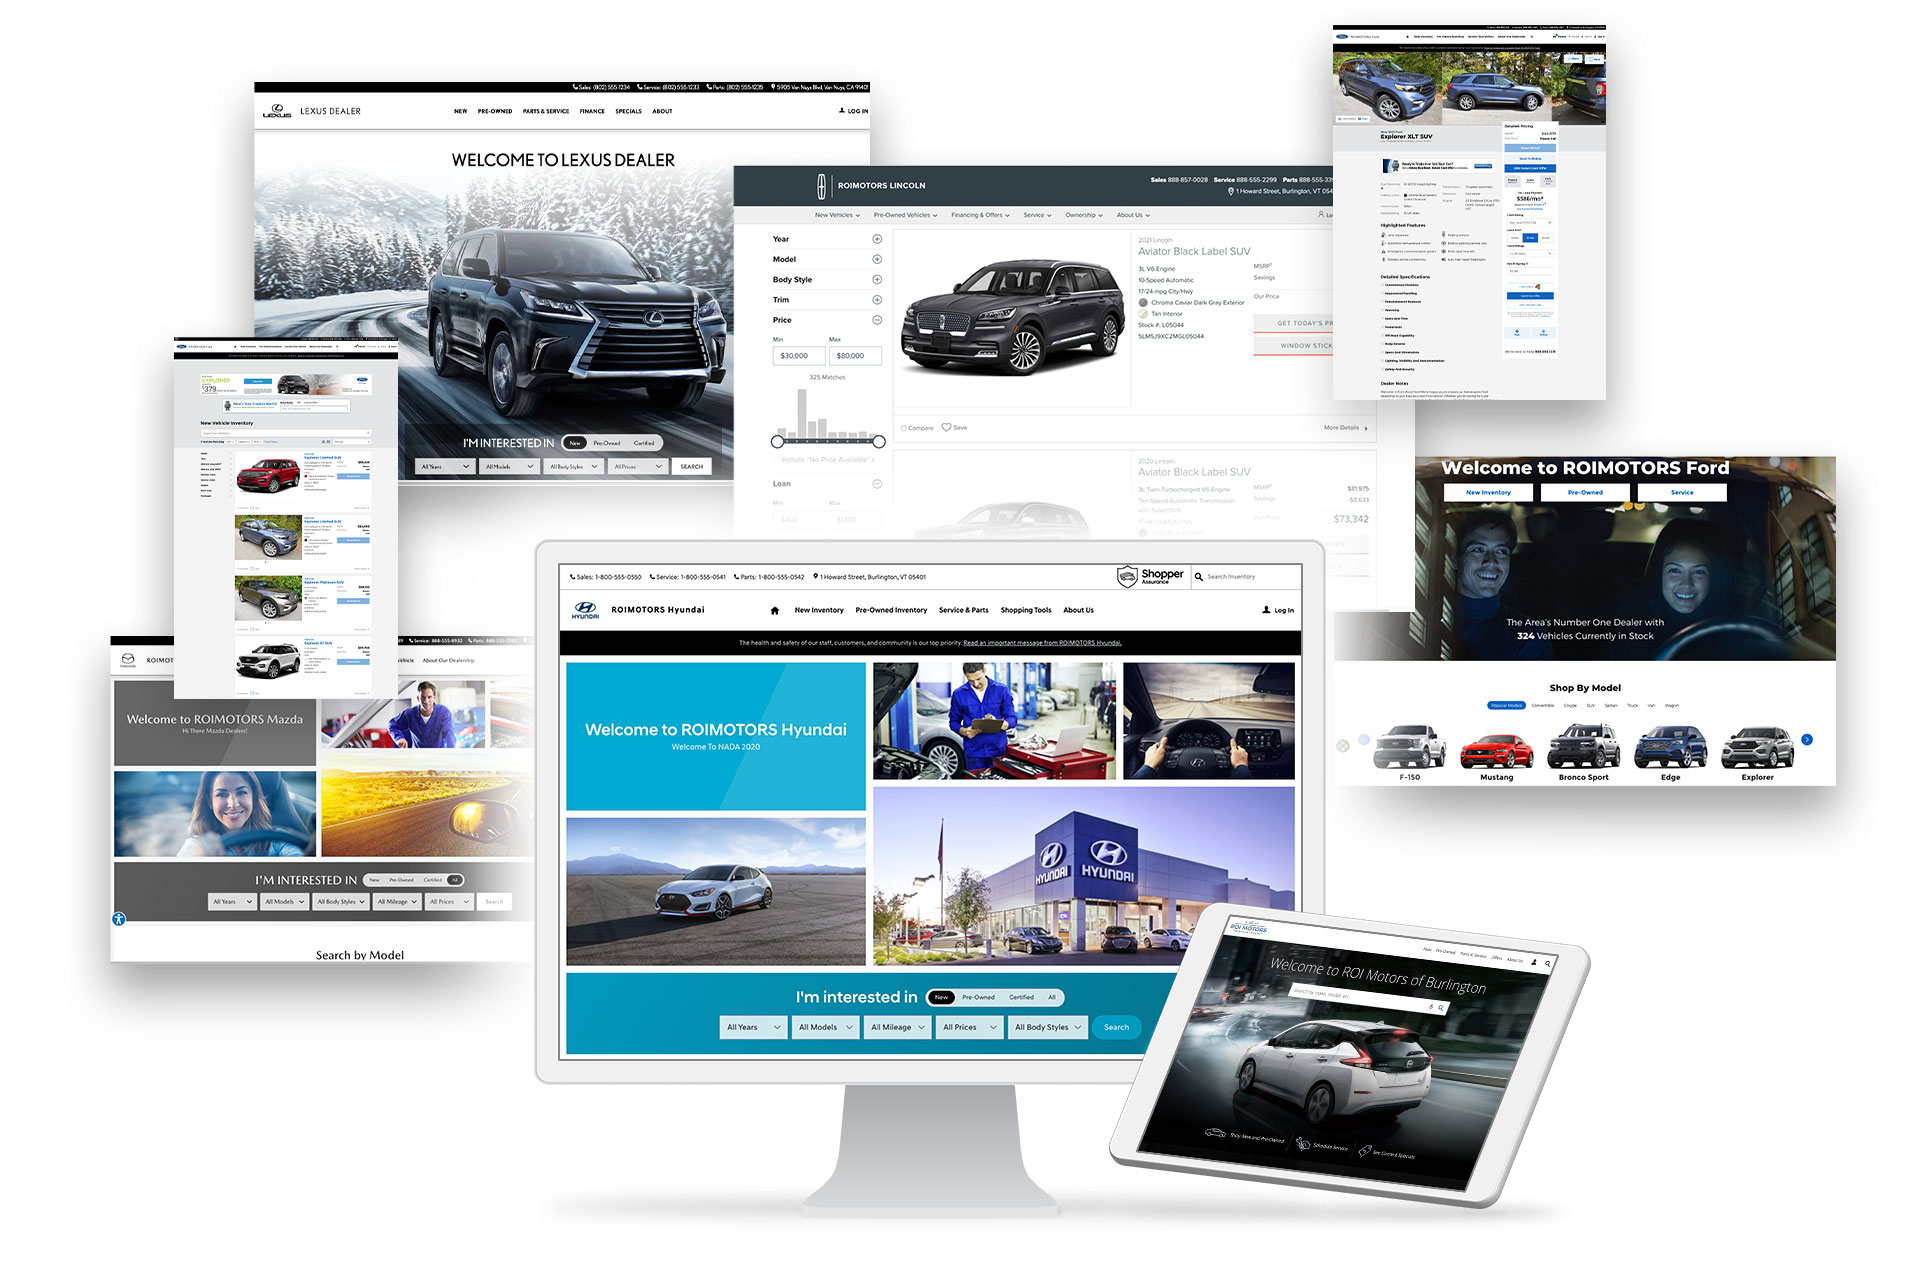 CPM20-0064_DDC_Product-Pages_Websites_Flexibility-Comes-Standard_1920x1280_v4